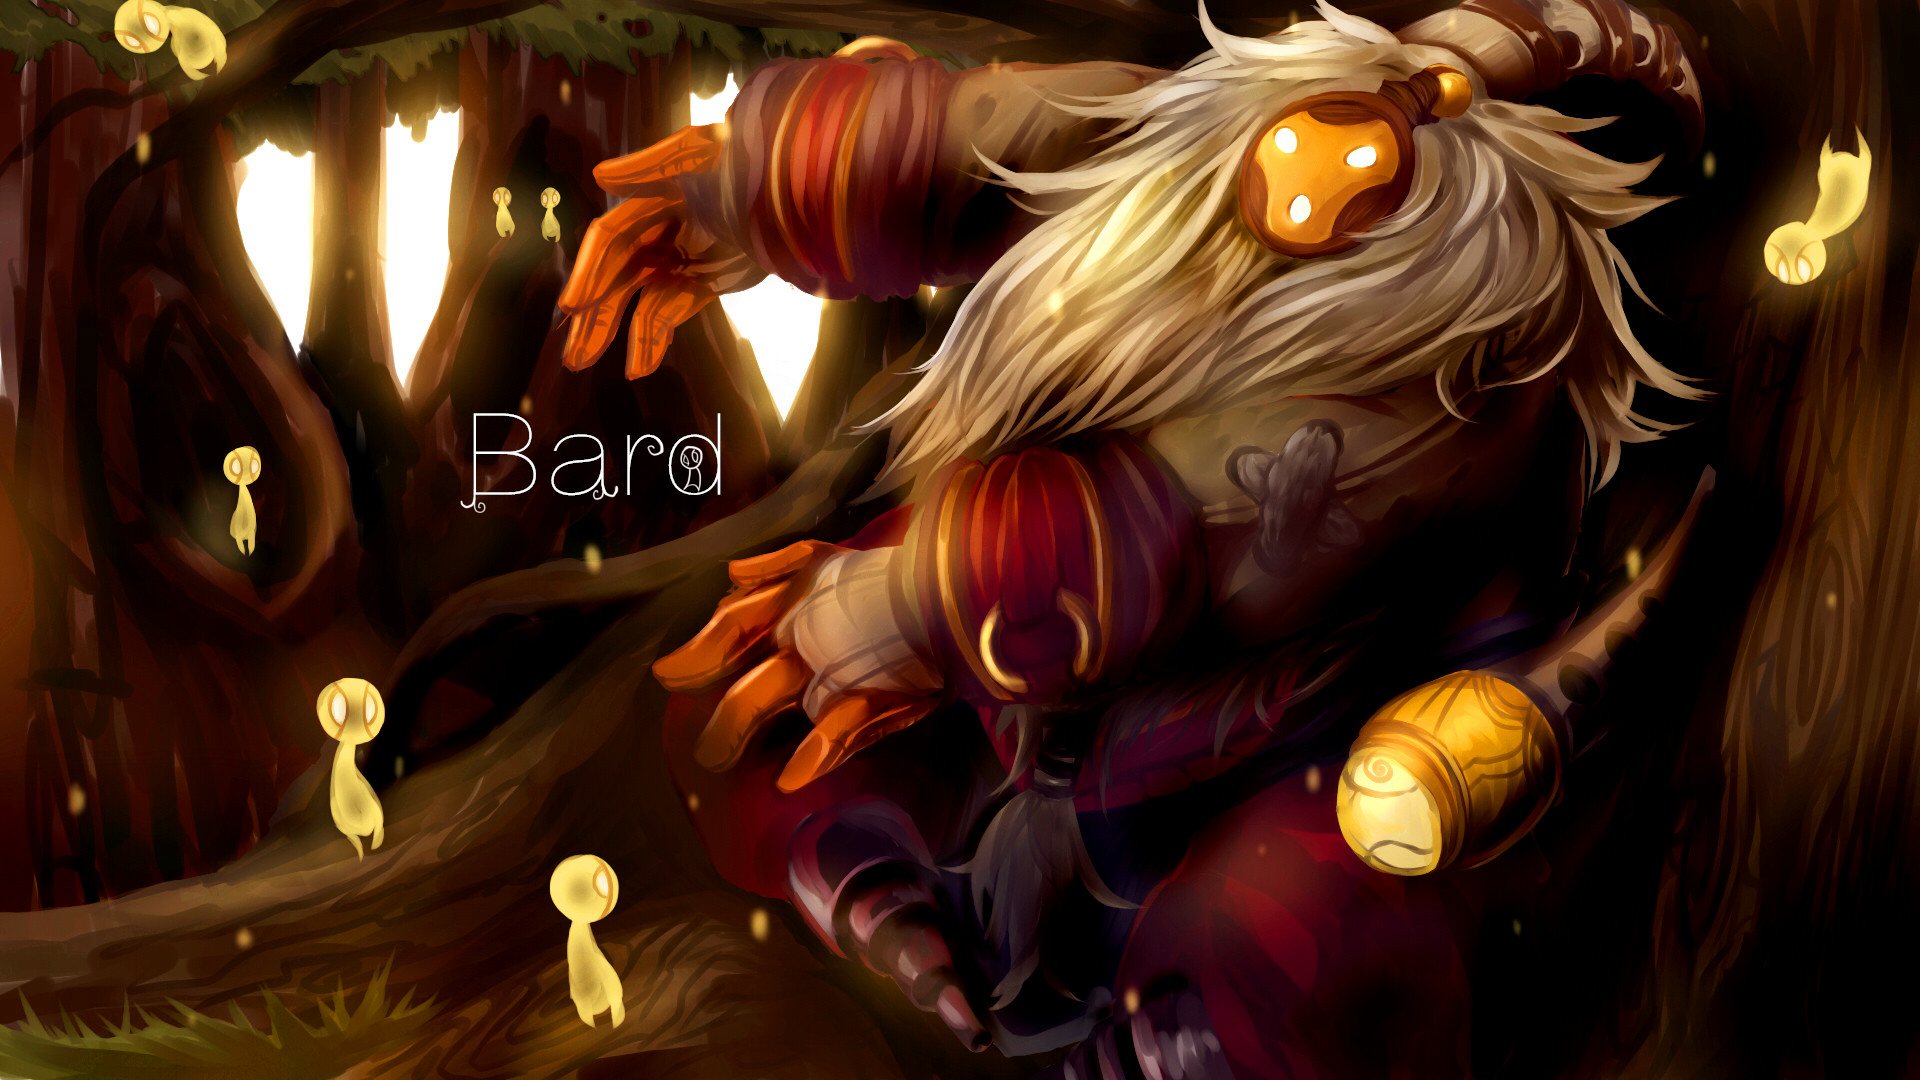 Bard - LoLWallpapers